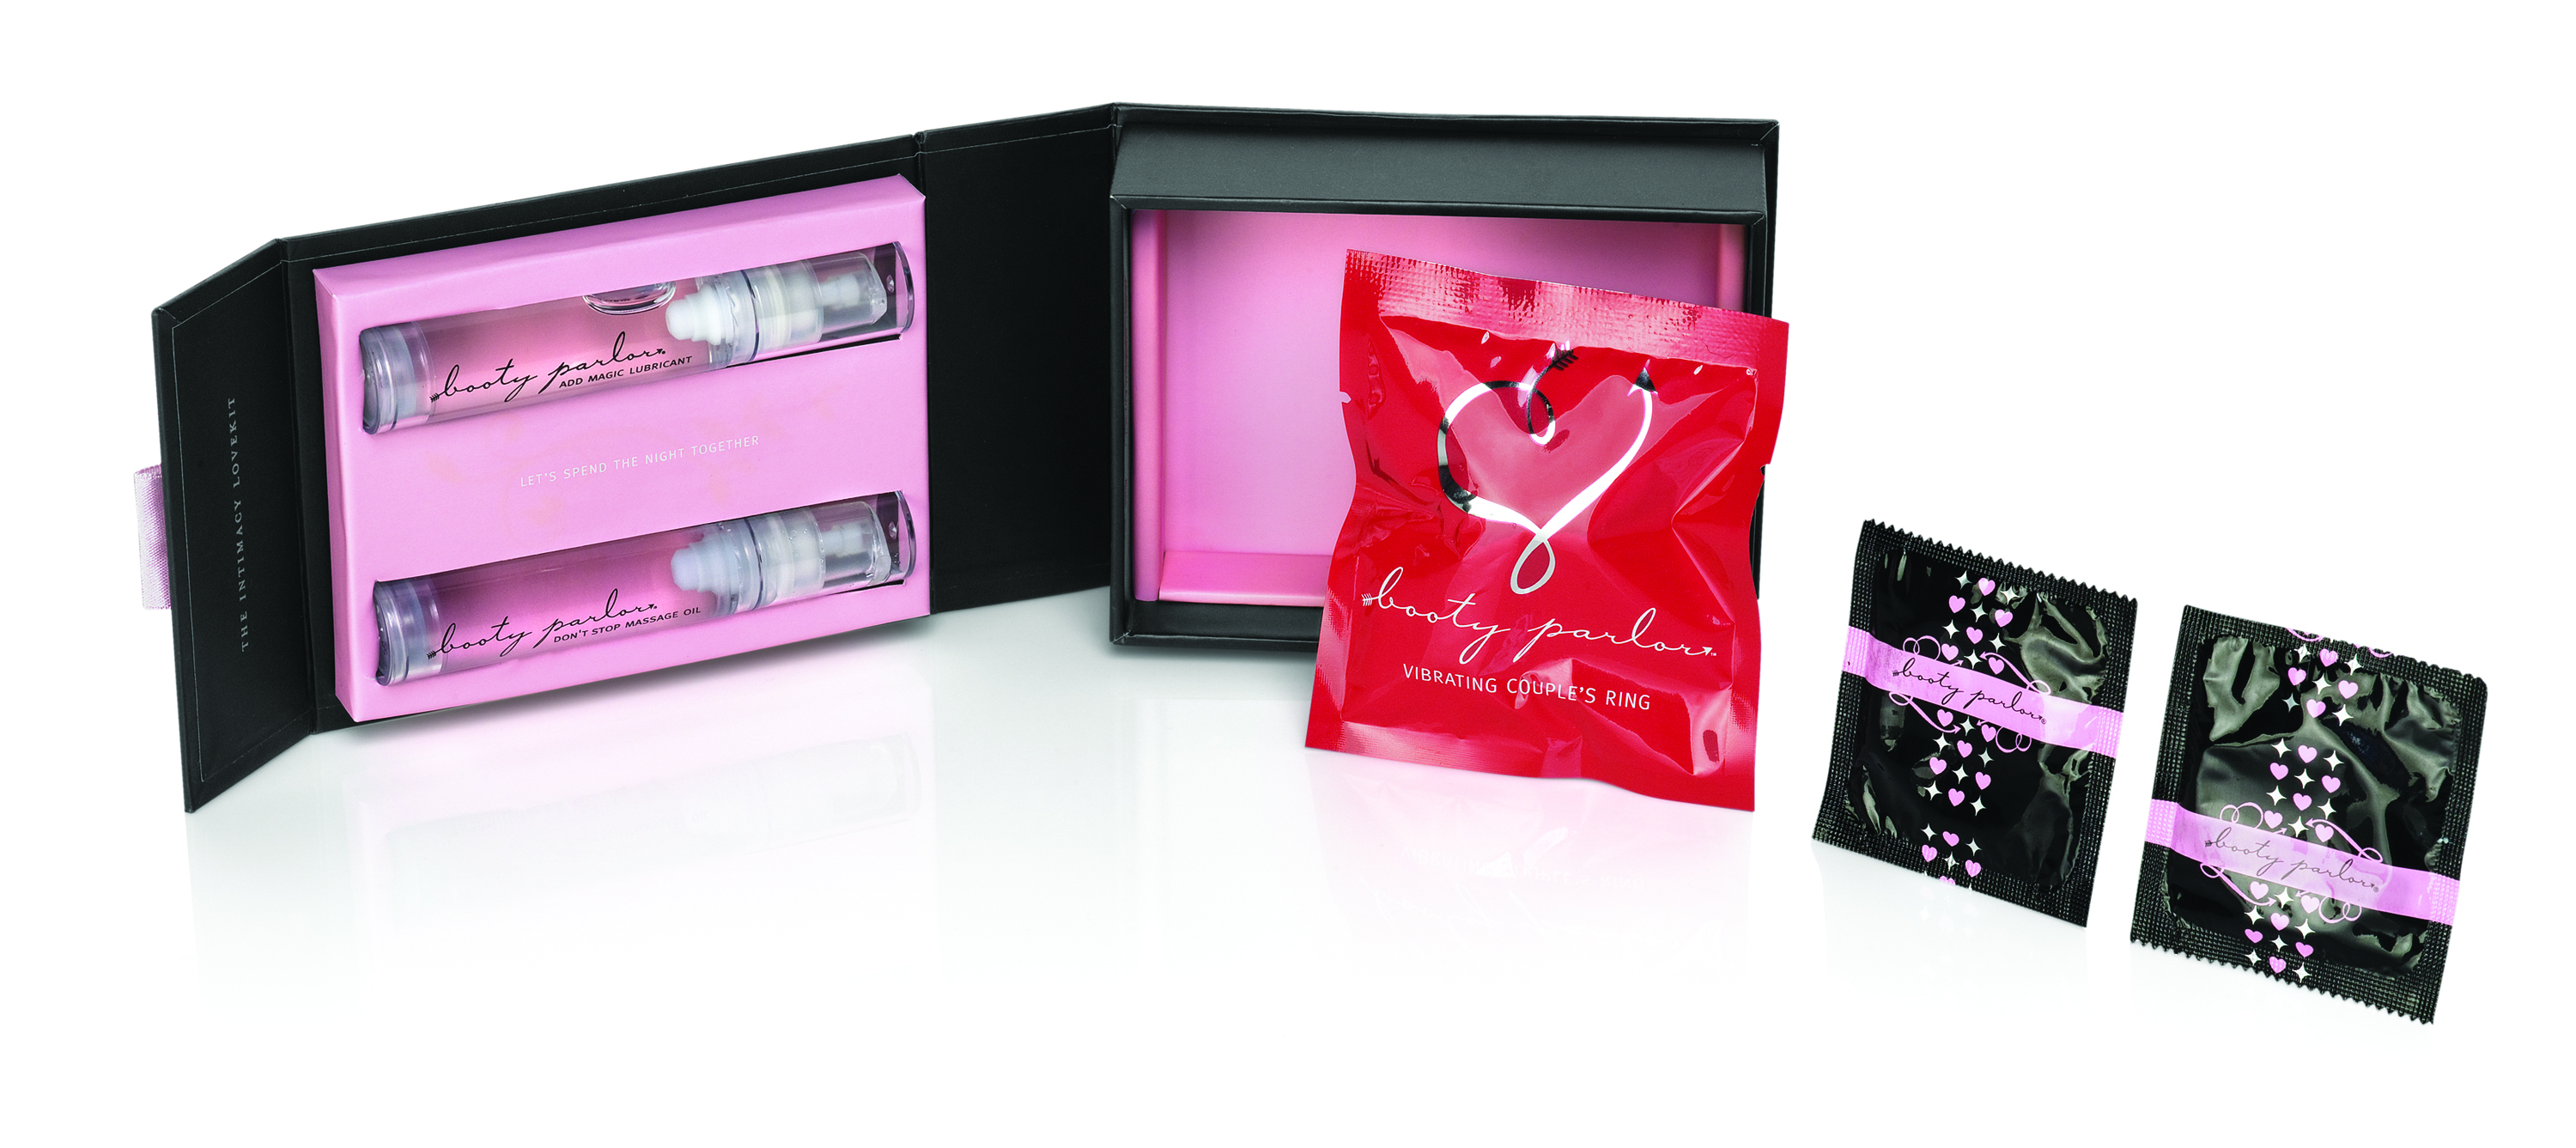 Booty Parlor The Intimacy LoveKit Sensual Gift Set